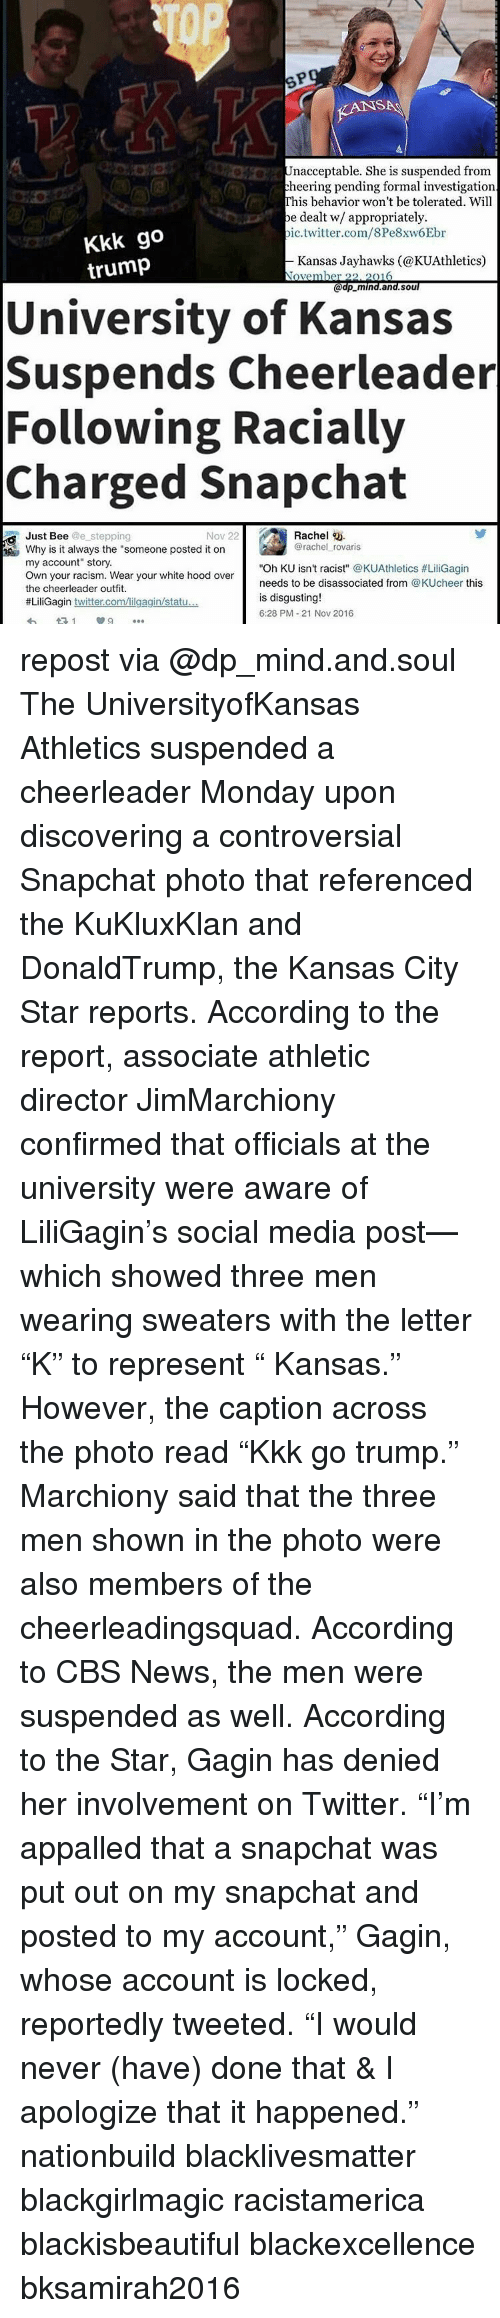 """jayhawk: KANSNA  Unacceptable. She is suspended from  cheering pending formal investigation  This behavior won't betolerated. Will  be dealt w/ appropriately.  ic.twitter.com/8Pe8xw6Ebr  Kkk go  trump  Kansas Jayhawks (@KUAthletics)  2016  Ove  er 22  @dp mind. and. Soul  University of Kansas  Suspends Cheerleader  Following Racially  Charged Snapchat  Rachel  Nov 22  Just Bee @e stepping  @rachel rovaris  Why is it always the """"someone posted it on  my account"""" story.  Oh KU isn't racist  @KUAthletics #LiliGagin  Own your racism. Wear your white hood over  needs to be disassociated from  @KUcheer this  the cheerleader outfit.  is disgusting!  #LiliGagin  twitter.com/lilgagin/statu  6:28 PM 21 Nov 2016 repost via @dp_mind.and.soul The UniversityofKansas Athletics suspended a cheerleader Monday upon discovering a controversial Snapchat photo that referenced the KuKluxKlan and DonaldTrump, the Kansas City Star reports. According to the report, associate athletic director JimMarchiony confirmed that officials at the university were aware of LiliGagin's social media post—which showed three men wearing sweaters with the letter """"K"""" to represent """" Kansas."""" However, the caption across the photo read """"Kkk go trump."""" Marchiony said that the three men shown in the photo were also members of the cheerleadingsquad. According to CBS News, the men were suspended as well. According to the Star, Gagin has denied her involvement on Twitter. """"I'm appalled that a snapchat was put out on my snapchat and posted to my account,"""" Gagin, whose account is locked, reportedly tweeted. """"I would never (have) done that & I apologize that it happened."""" nationbuild blacklivesmatter blackgirlmagic racistamerica blackisbeautiful blackexcellence bksamirah2016"""